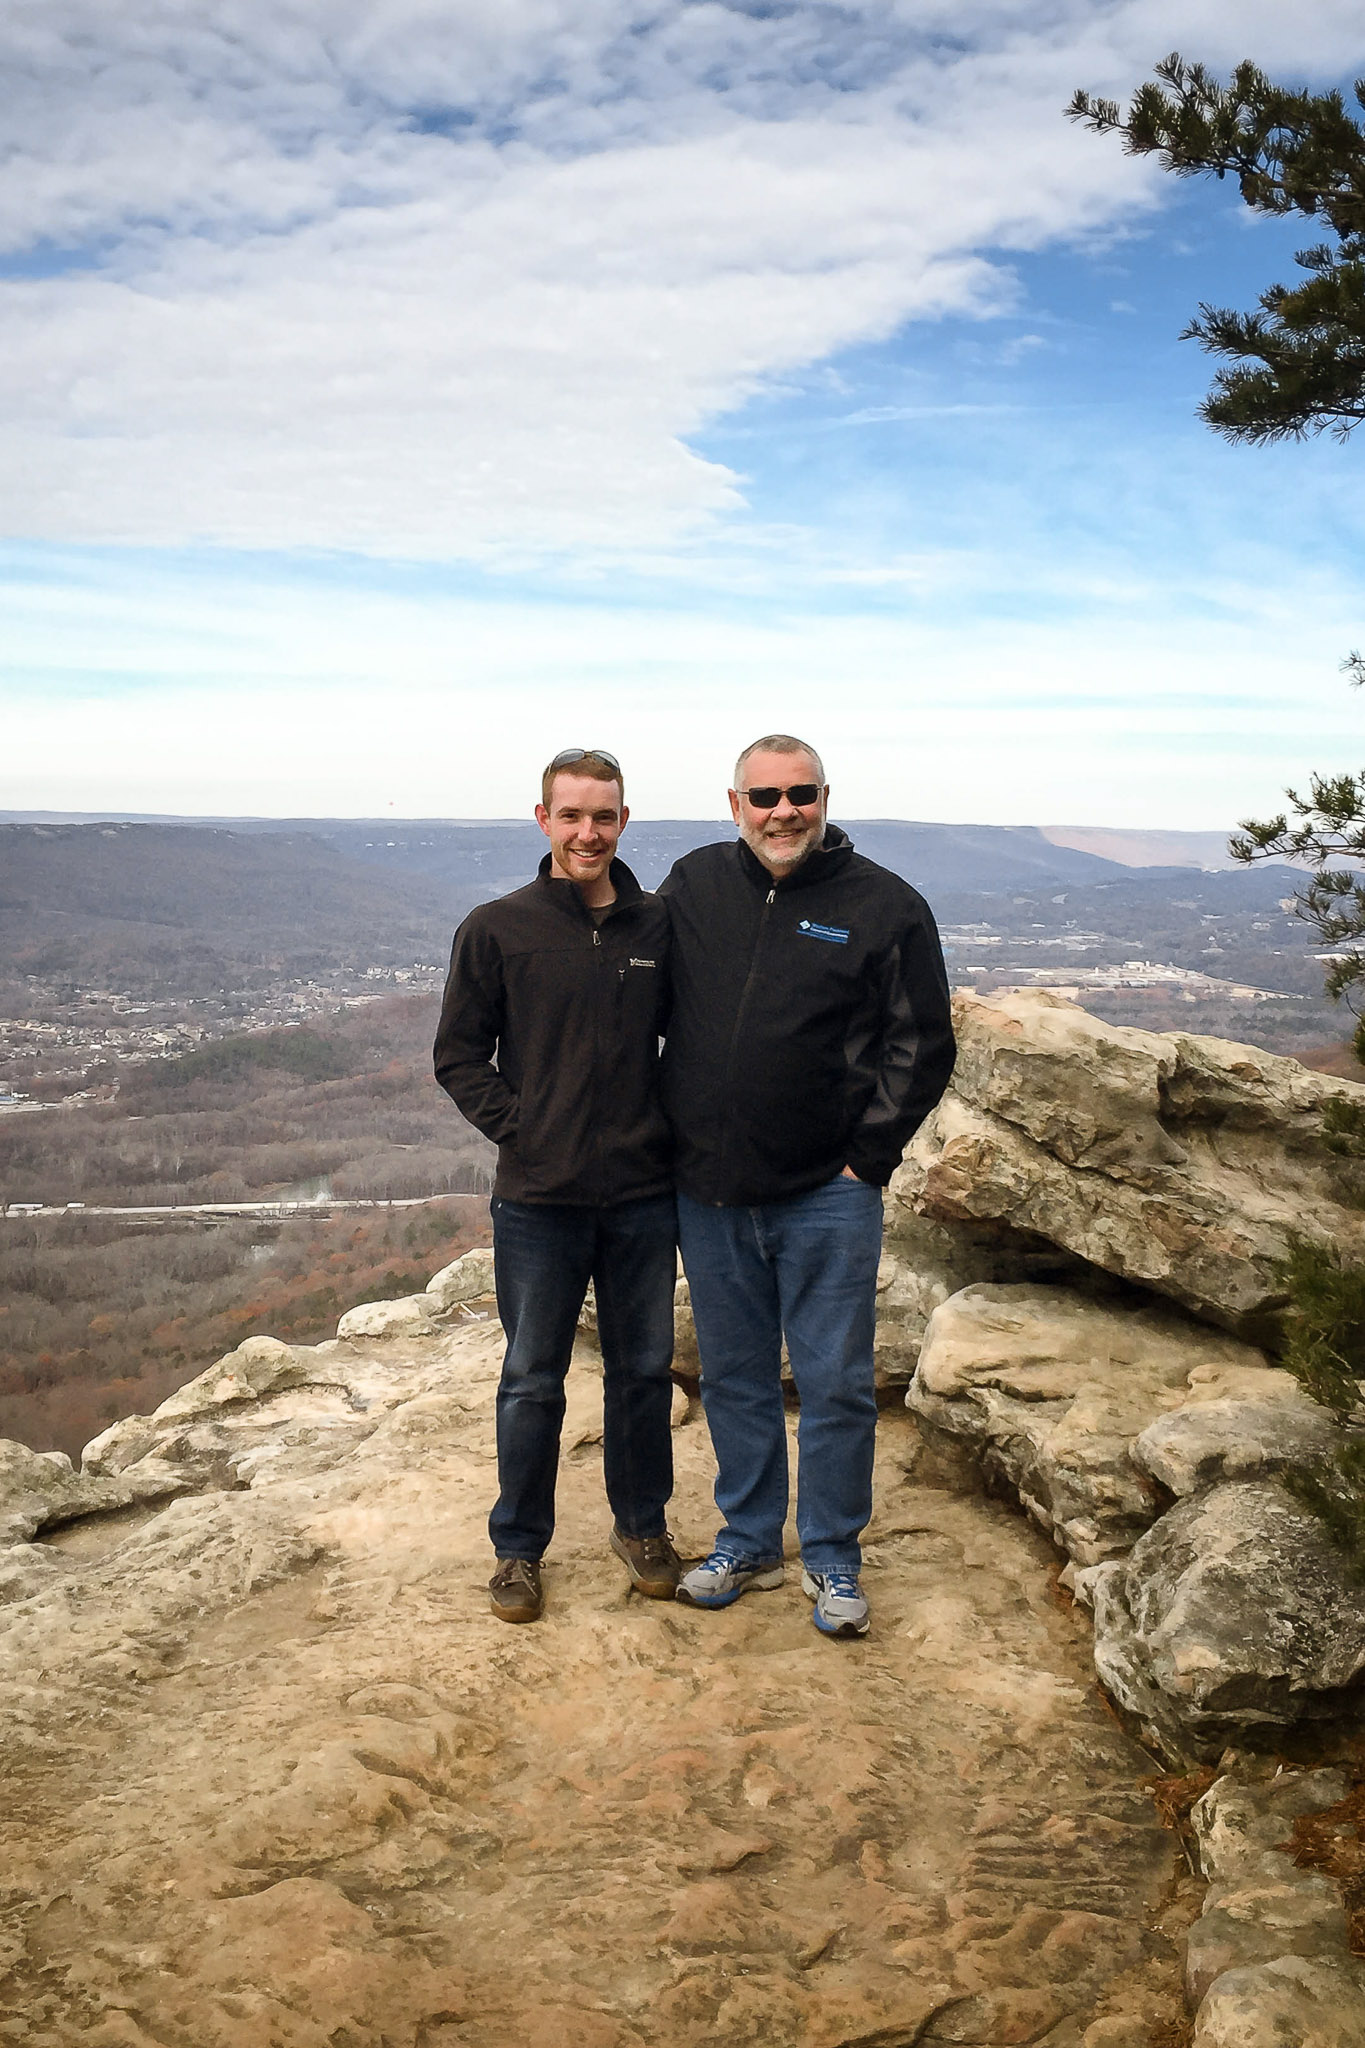 Point Park // Lookout Mountain